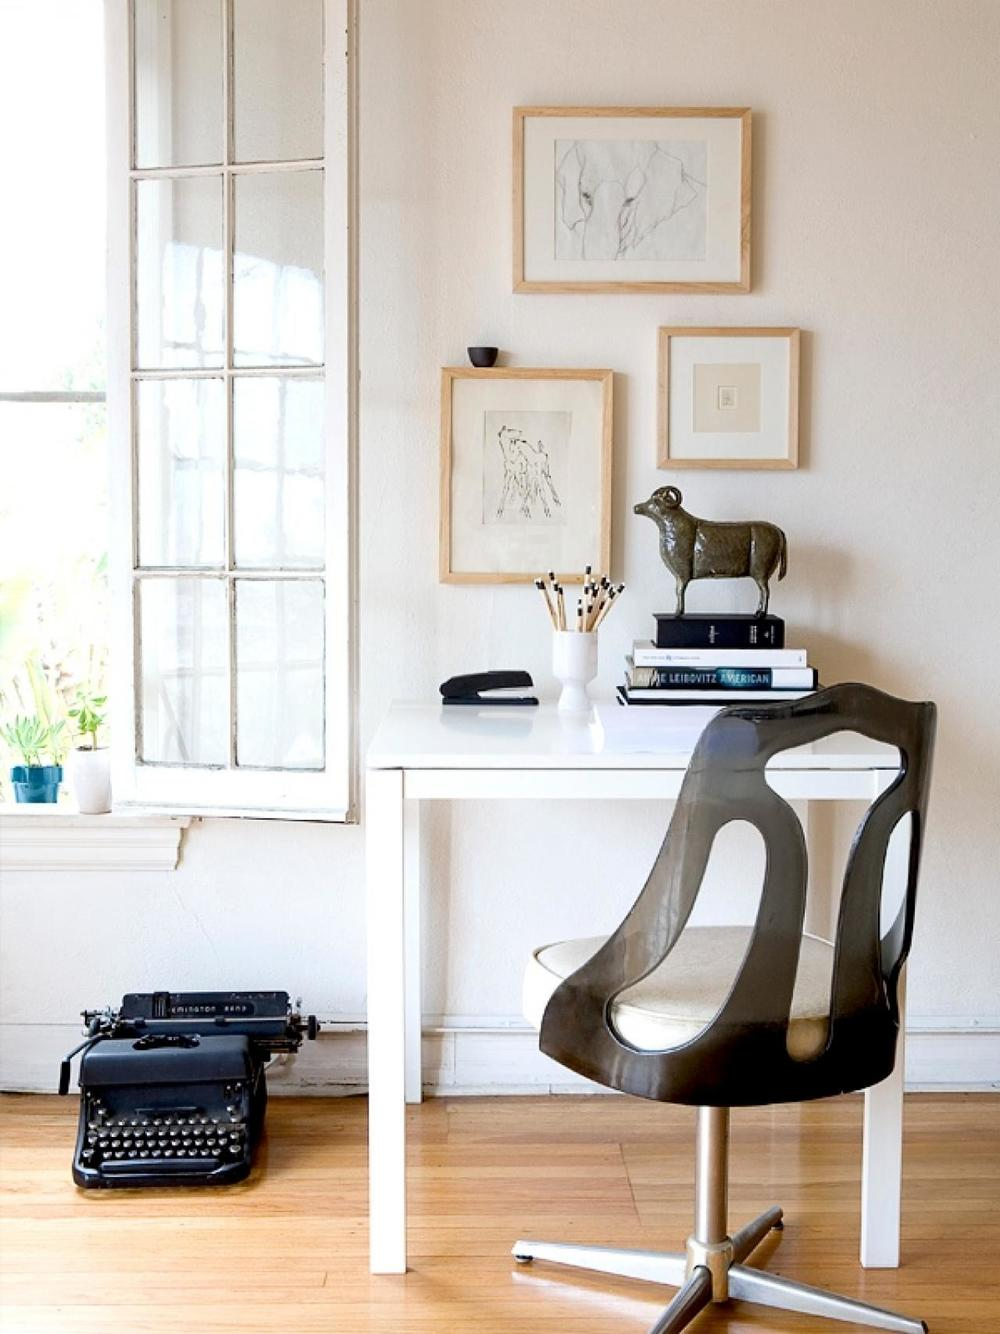 Simple-Small-Home-Office-Ideas-with-Square-Desk-and-Unique-Chair-Design-and-Pictures-beside-Window.jpeg